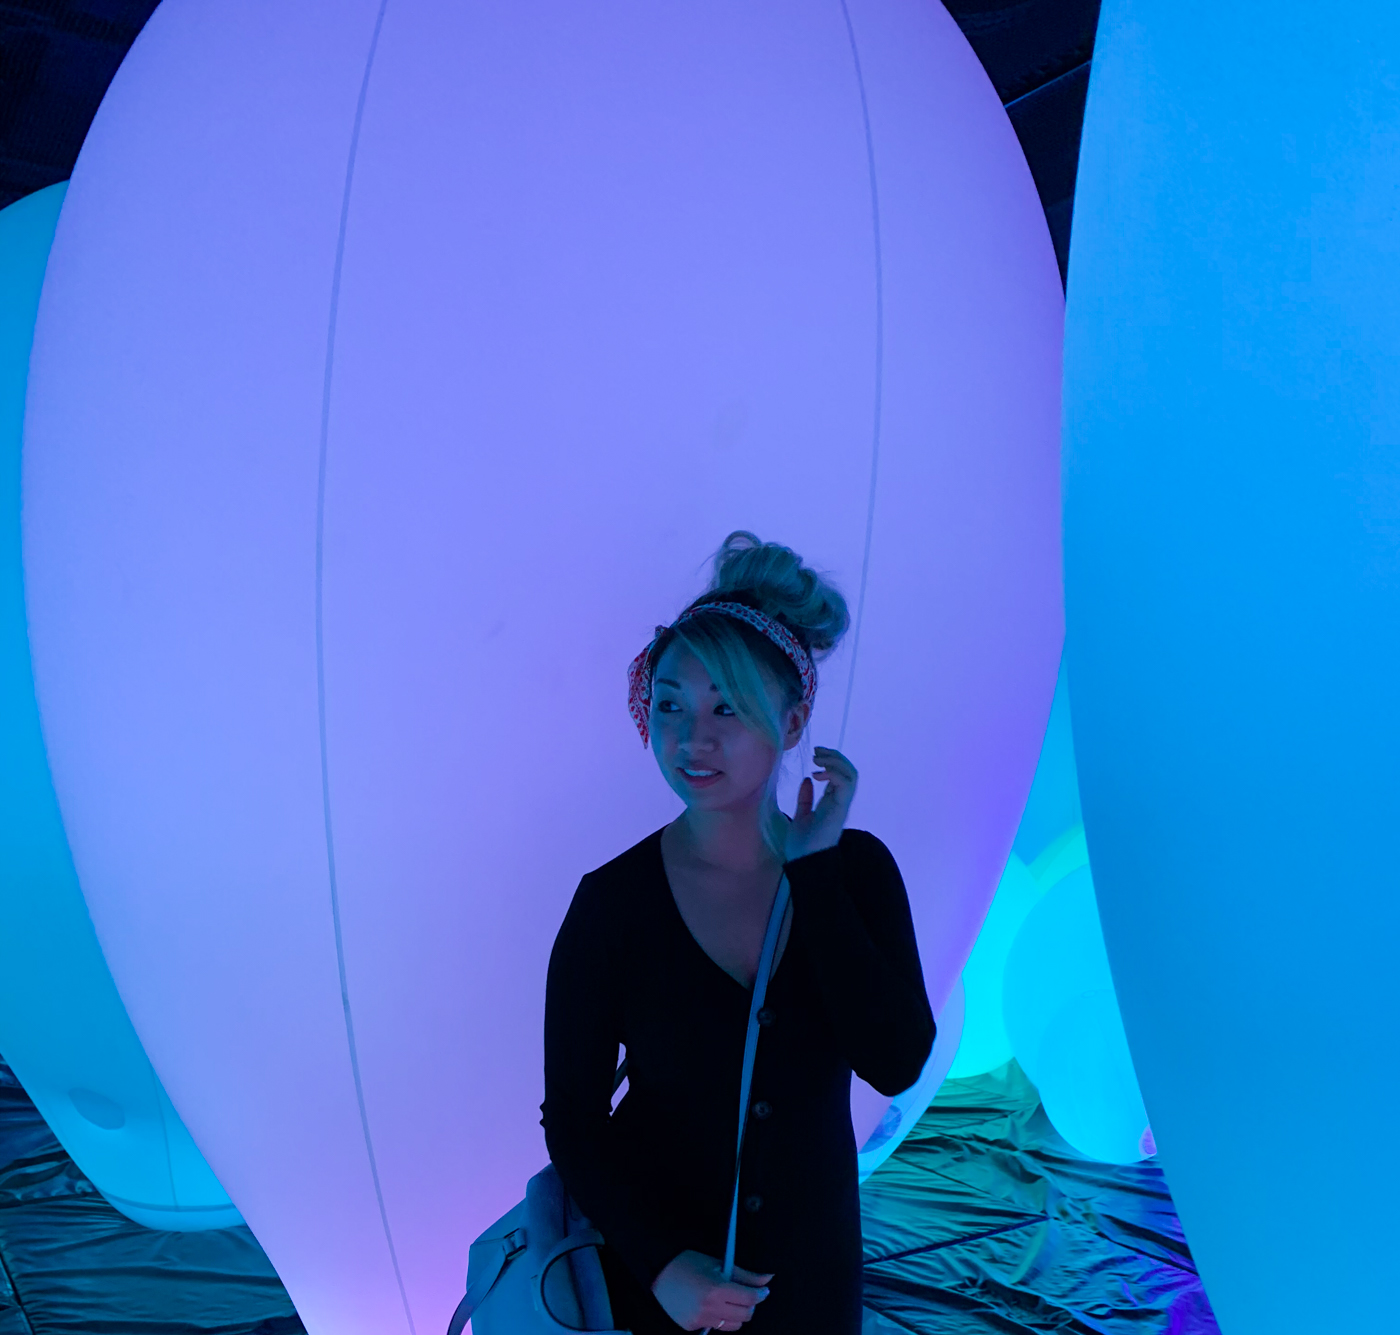 teamLab Borderless Exhibit | Balloons